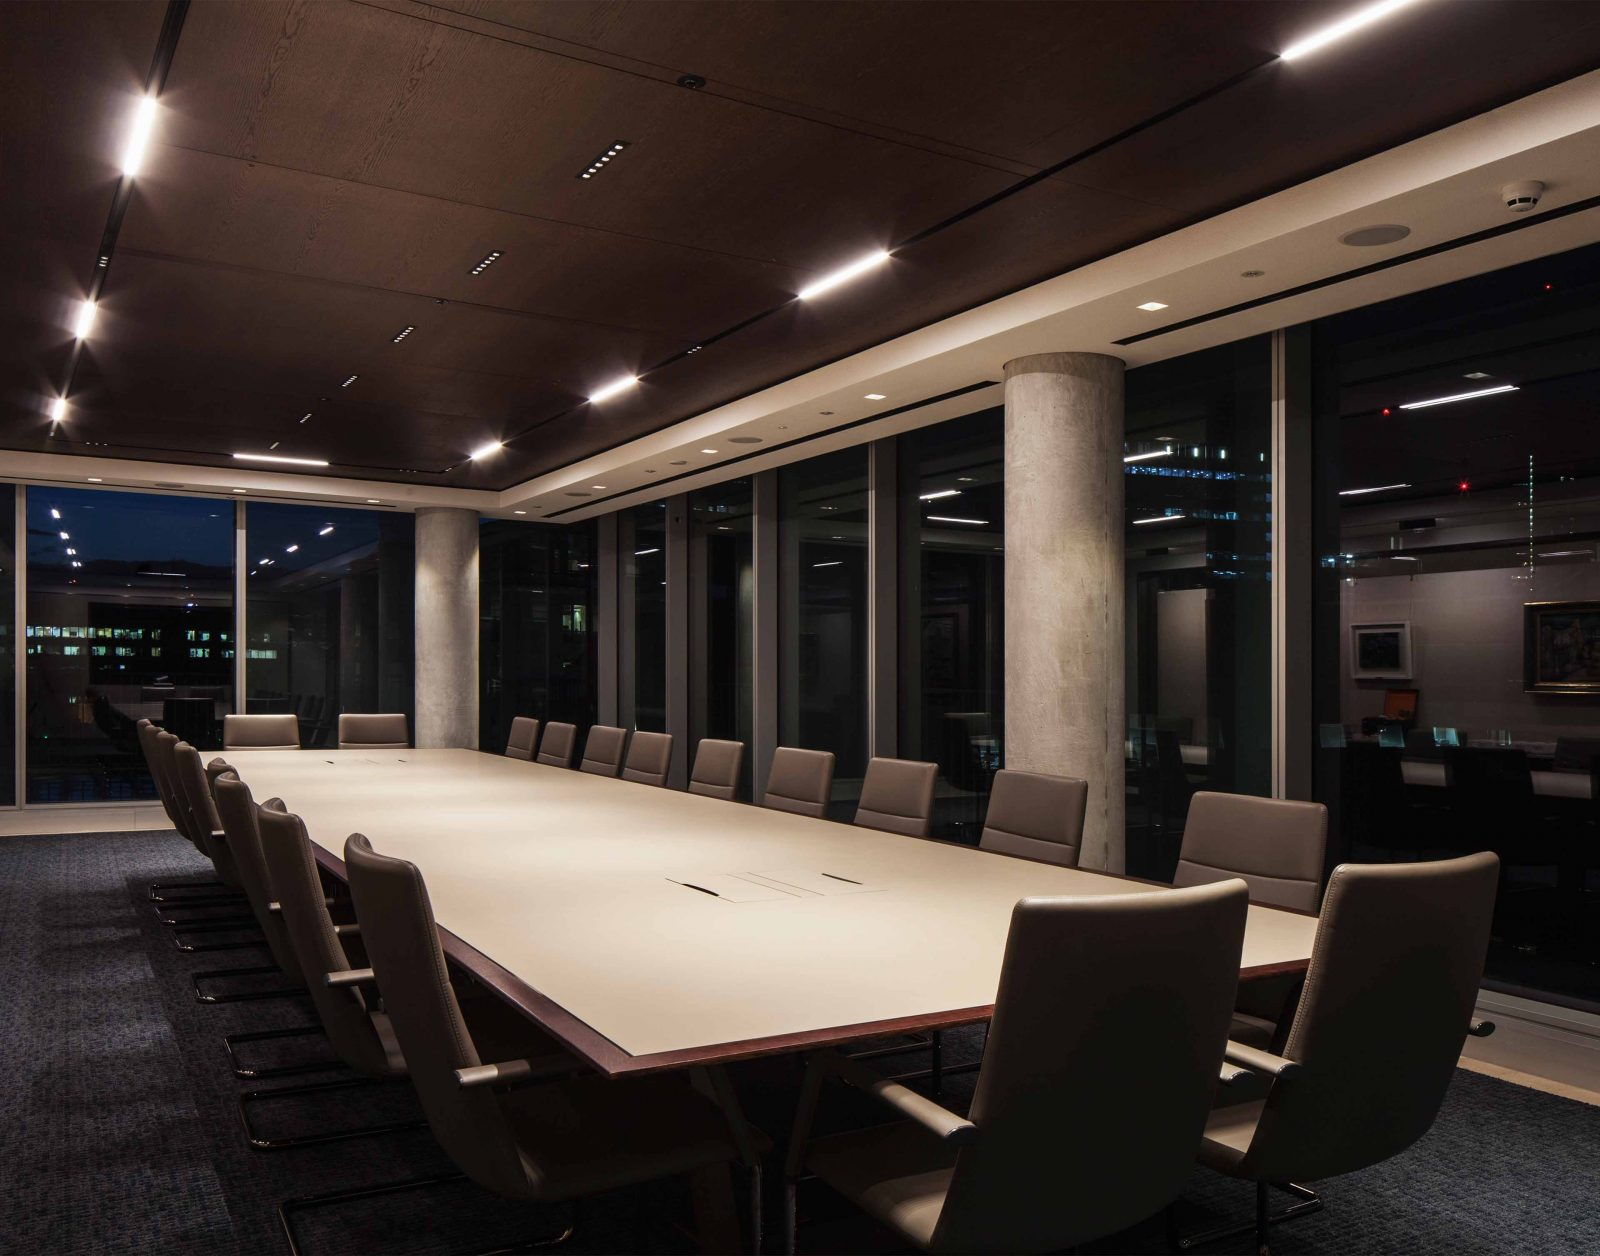 Lighting Scheme Workplace Boardroom Contemporary Interior Design Glass Windows Studio N